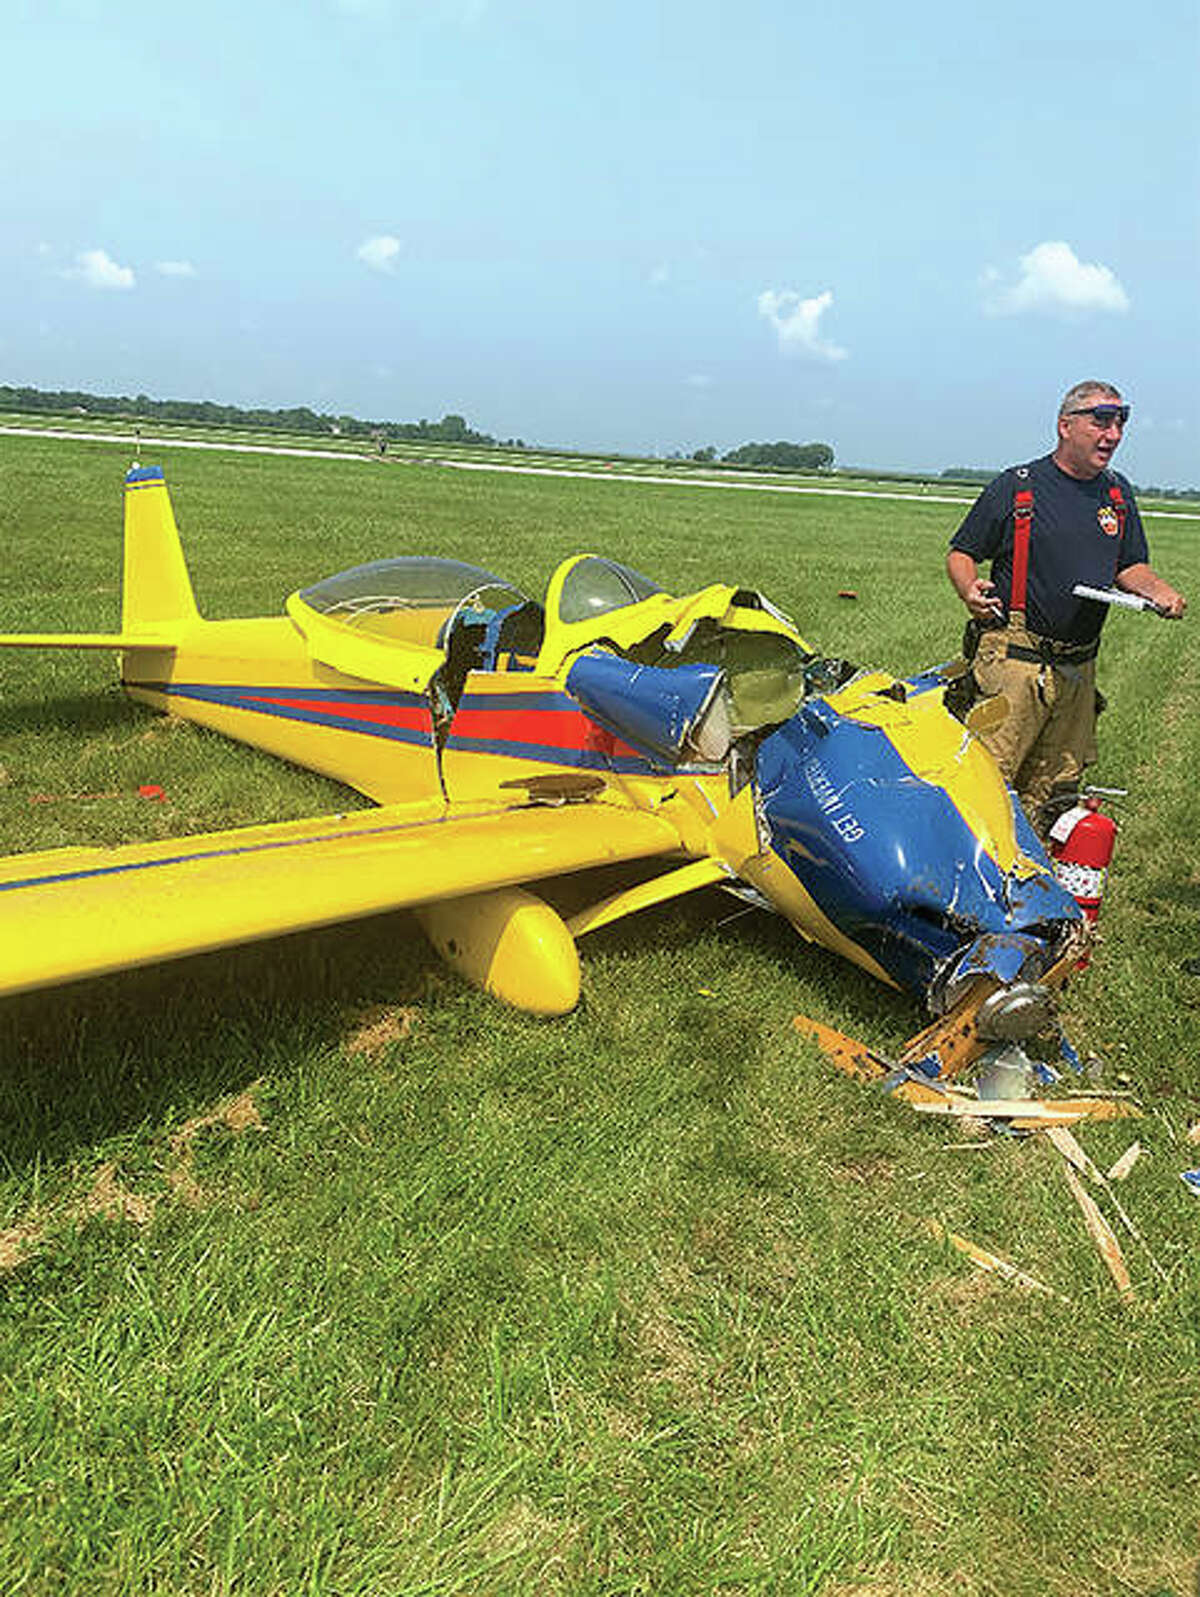 Jacksonville Fire Department Capt. Mike Martin files a report after a single-engine aircraft crashed Wednesday. The pilot, who was en route to Brooklyn, New York, declined medical treatment.